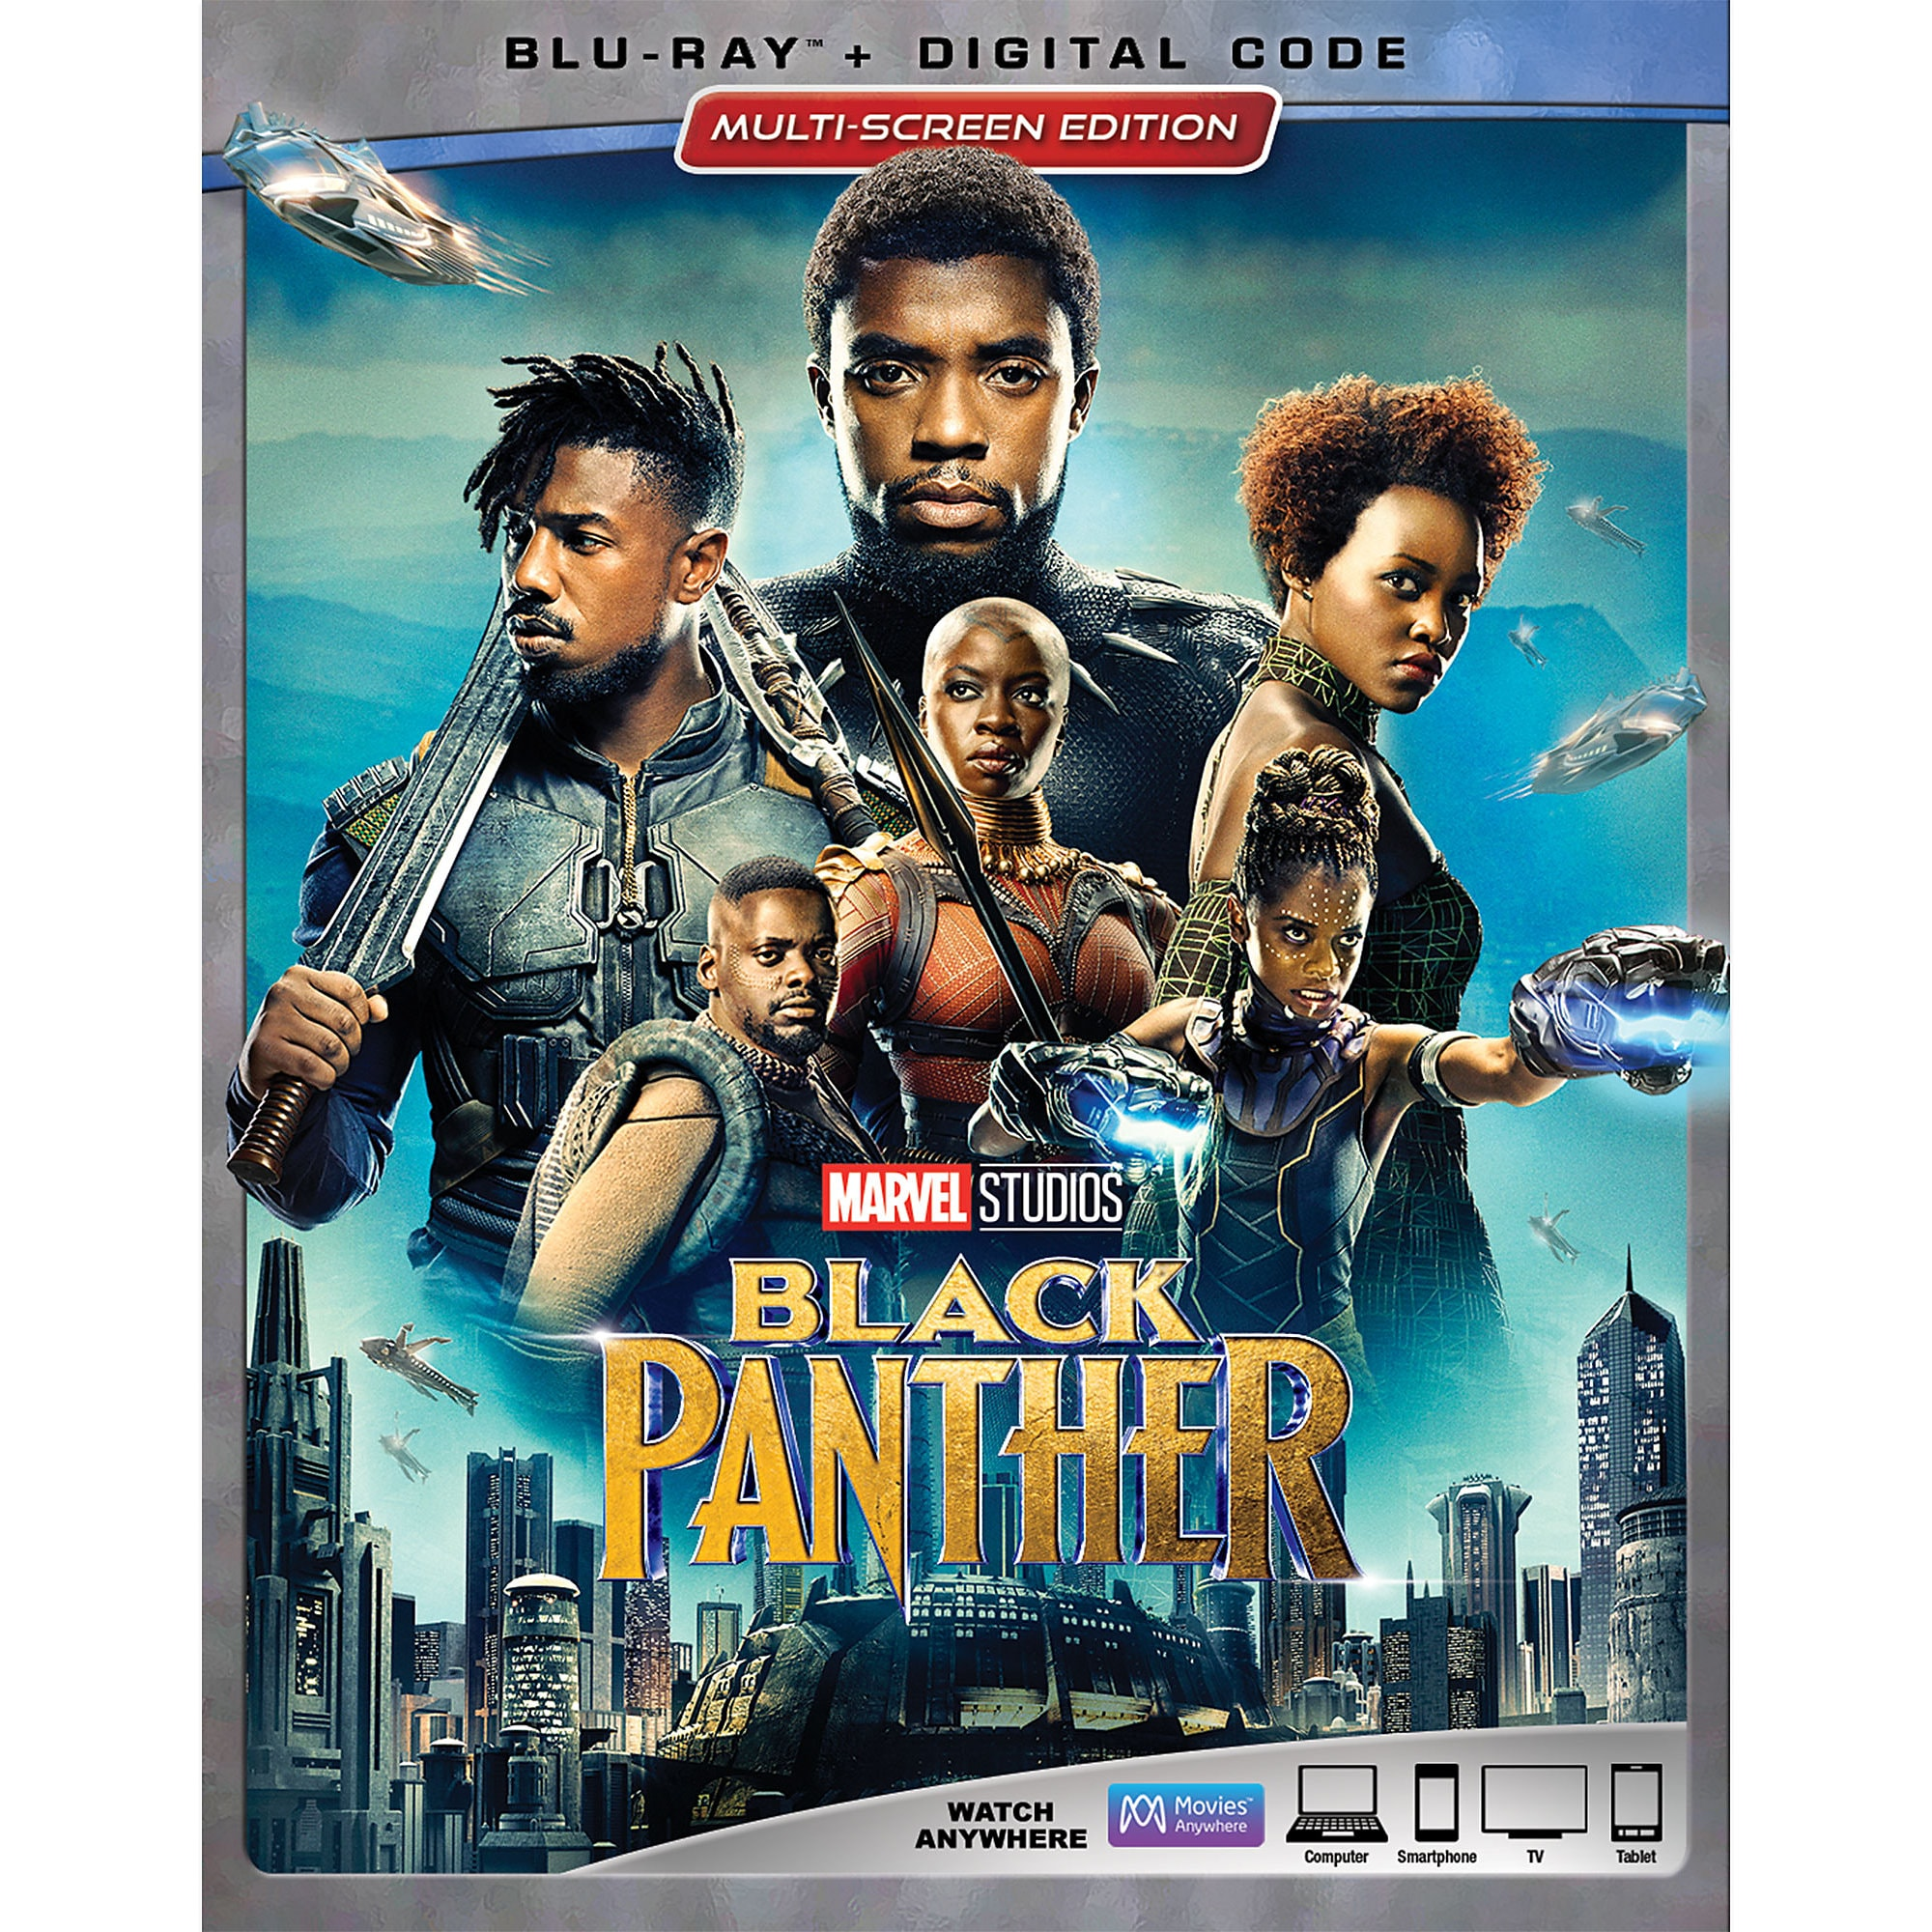 Black Panther Blu-ray Combo Pack Multi-Screen Edition | shopDisney